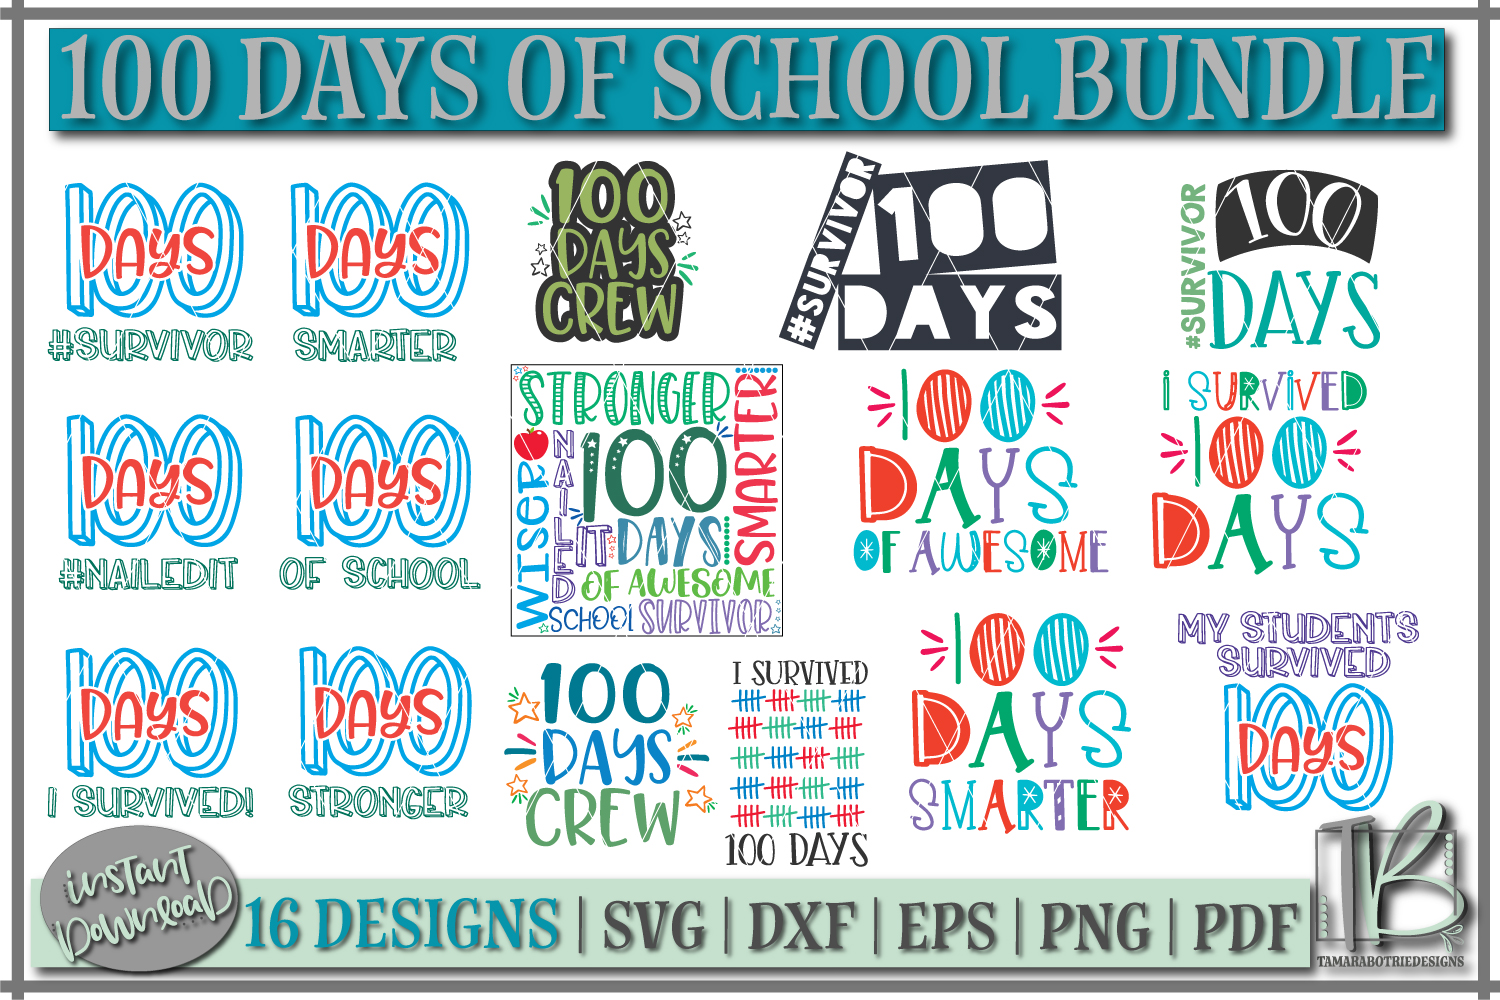 Download Free 100 Days Of School Bundle Graphic By Tamarabotriedesigns for Cricut Explore, Silhouette and other cutting machines.